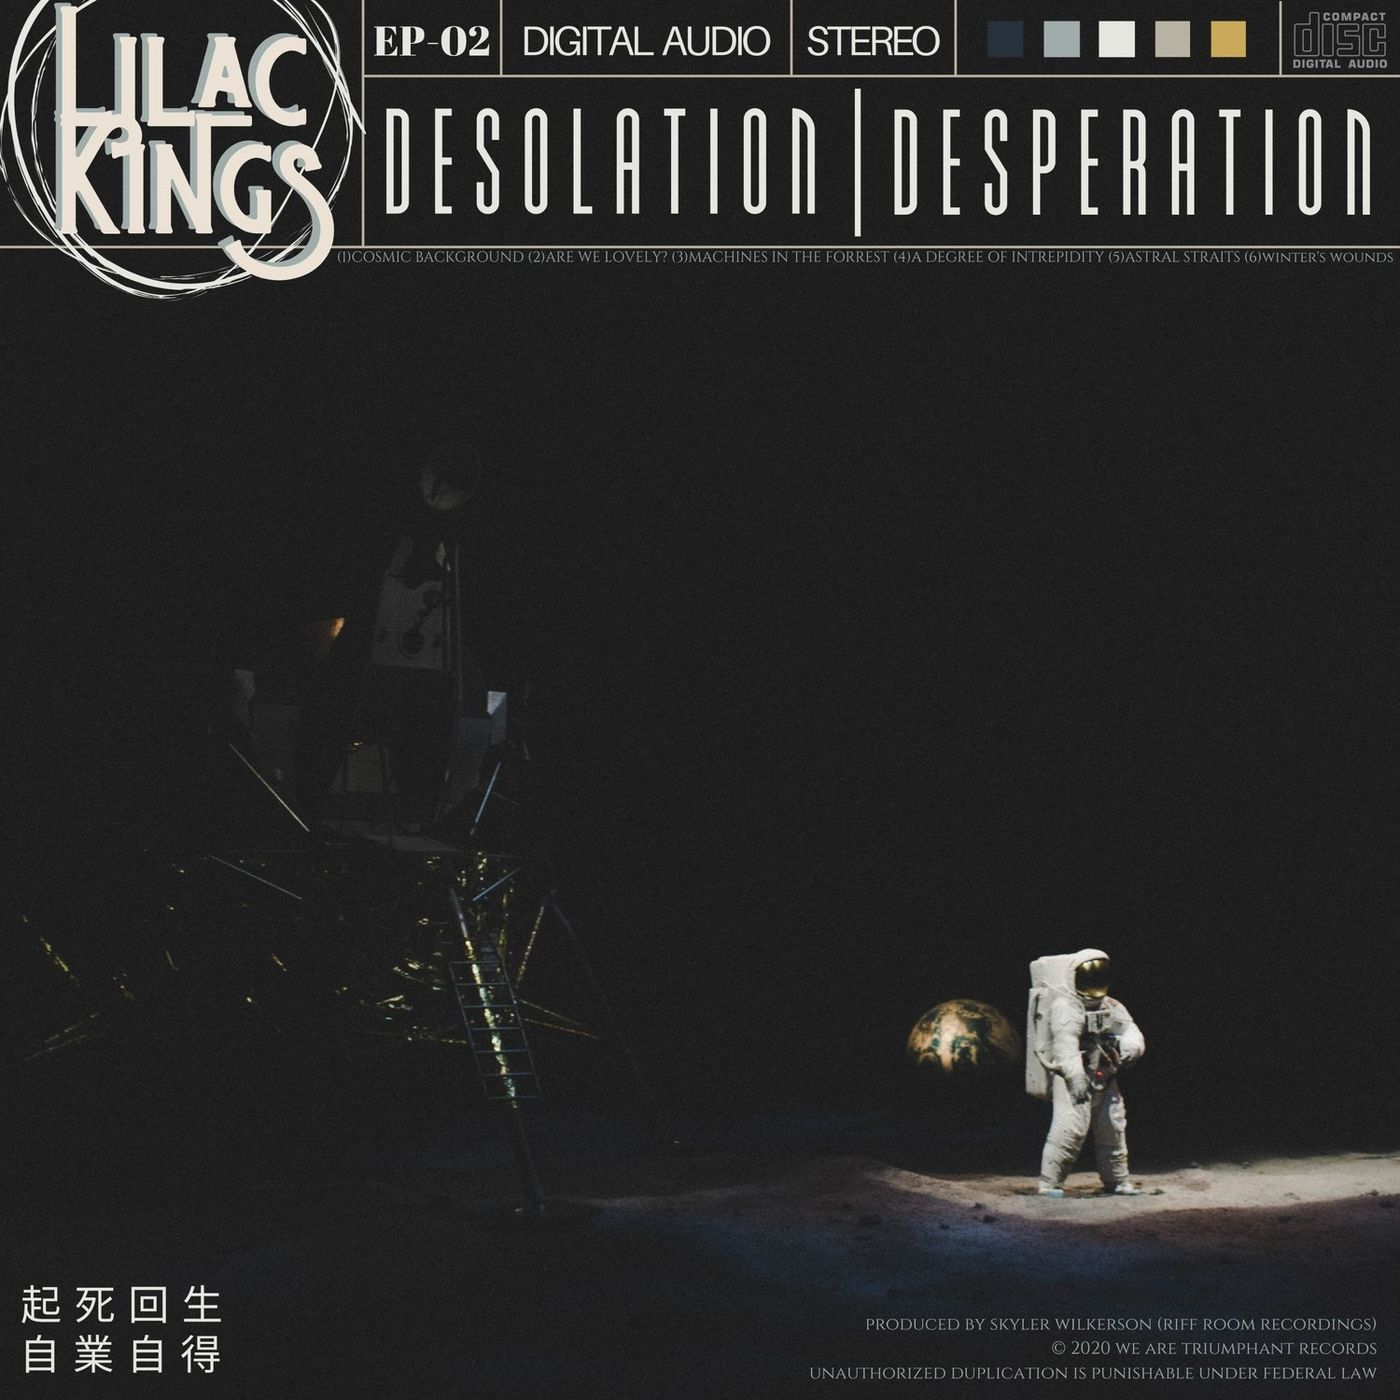 Lilac Kings - Desolation | Desperation [EP] (2020)